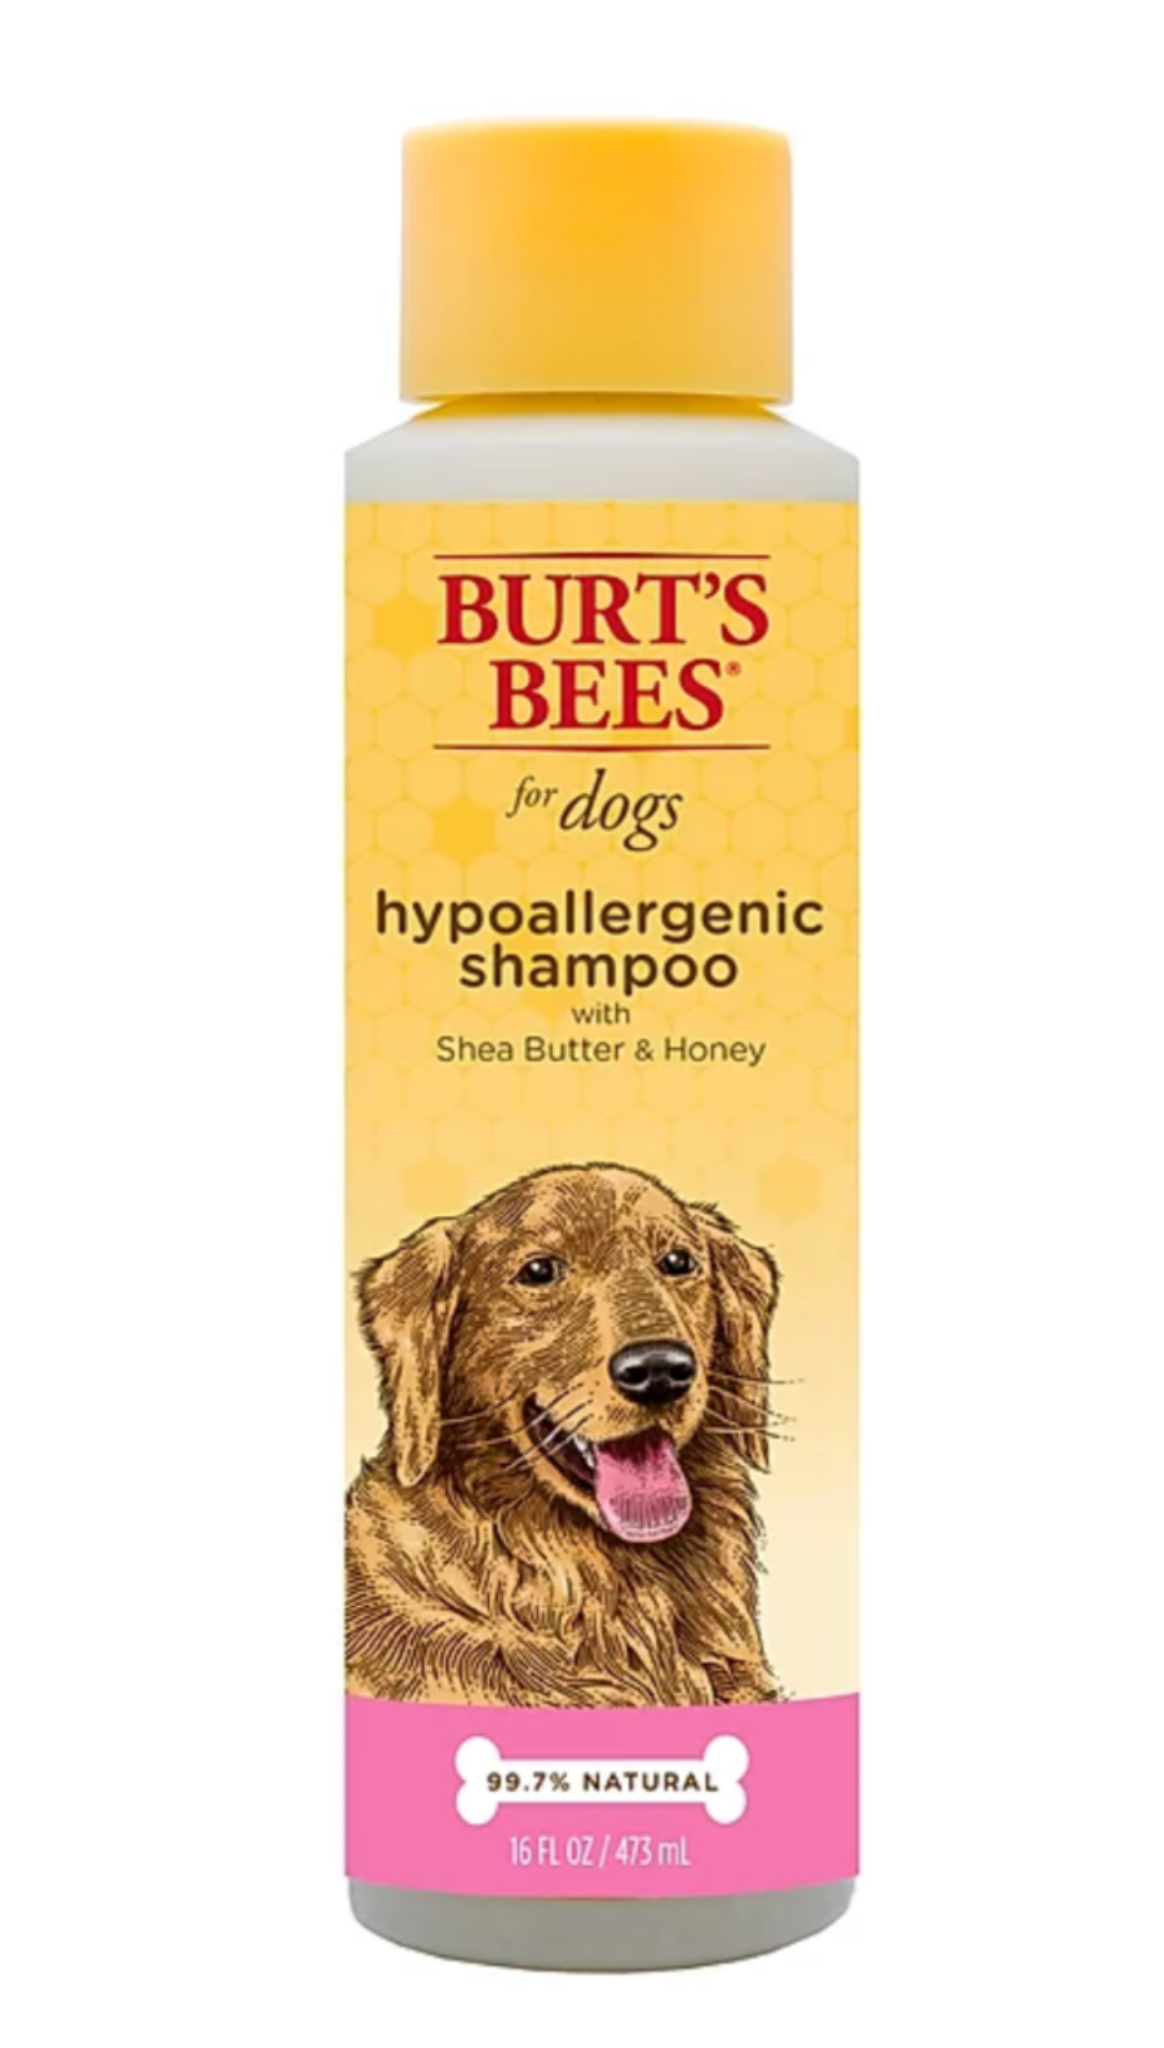 Burt's Bees Hypoallergenic Shampoo With Shea Butter & Honey